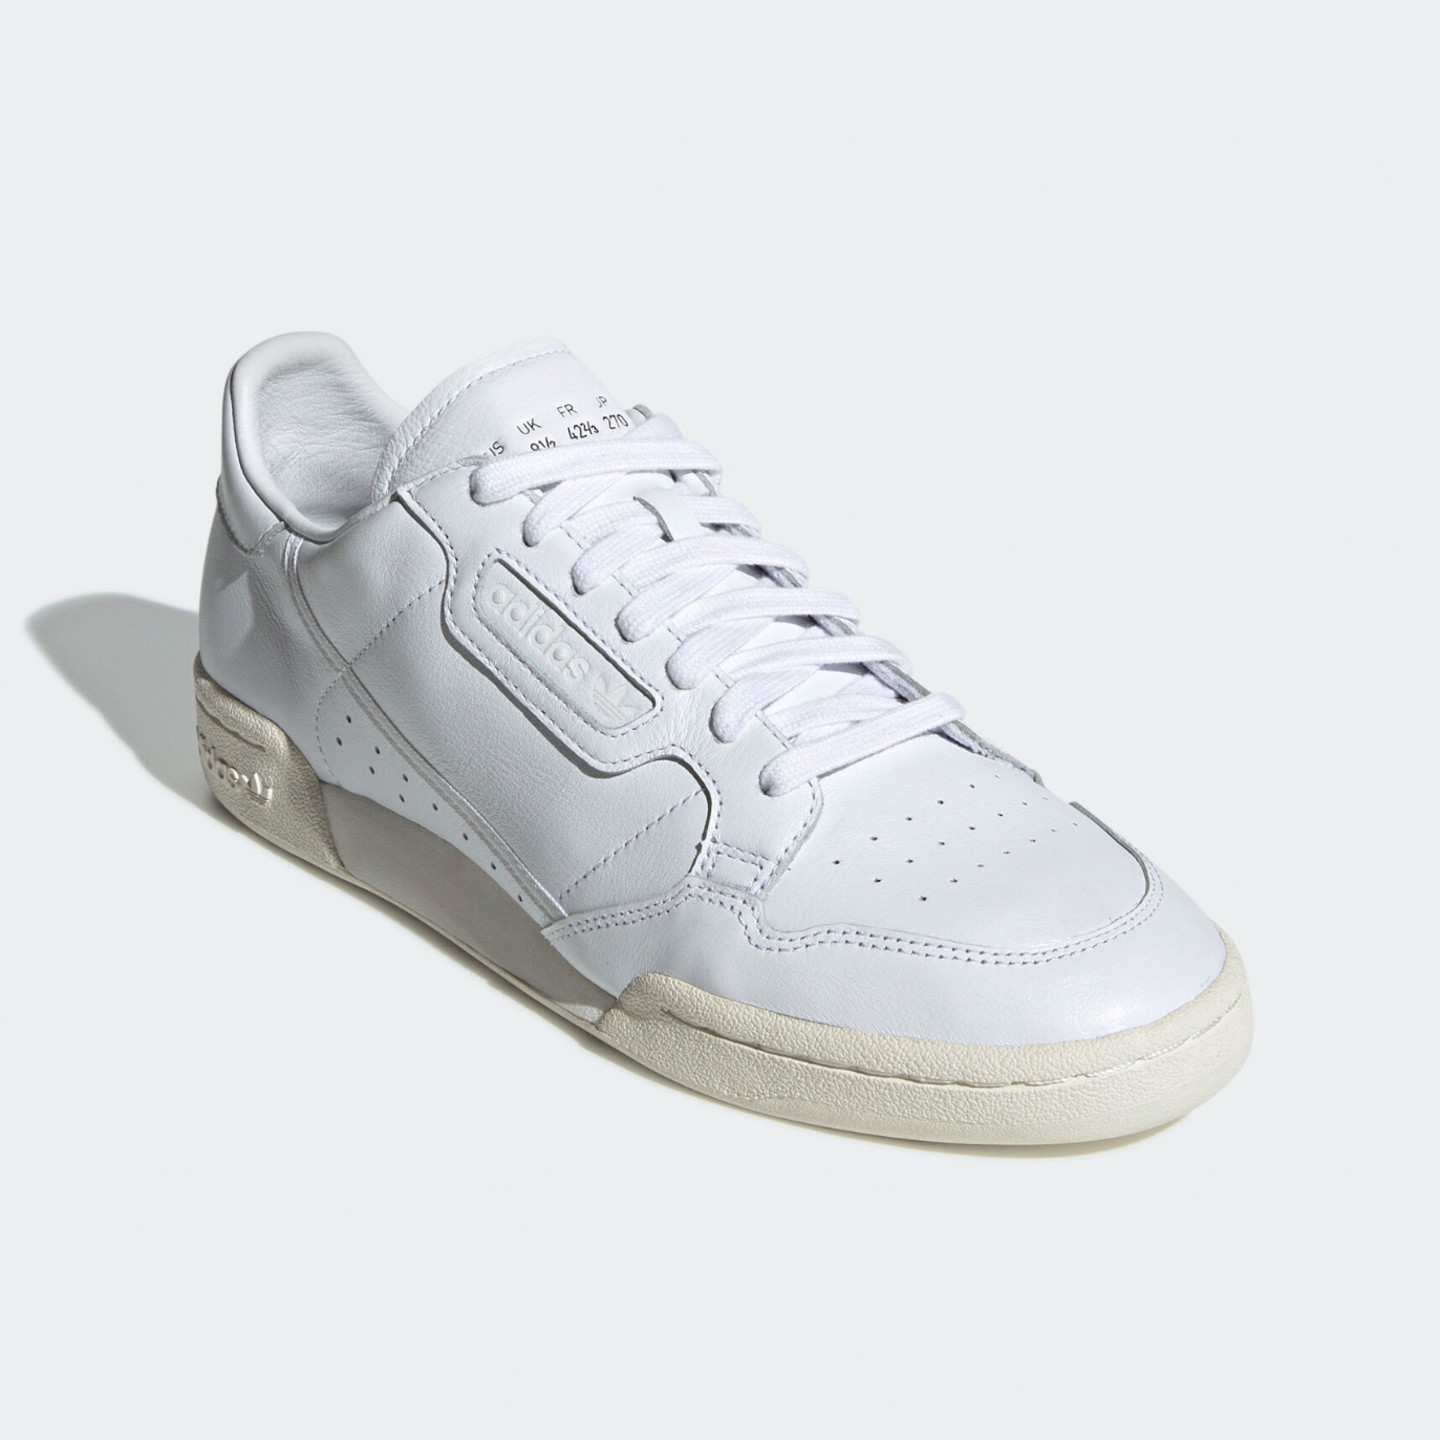 Adidas Continental 80 'Home of Classics' Ftwr White / Off White EE6329